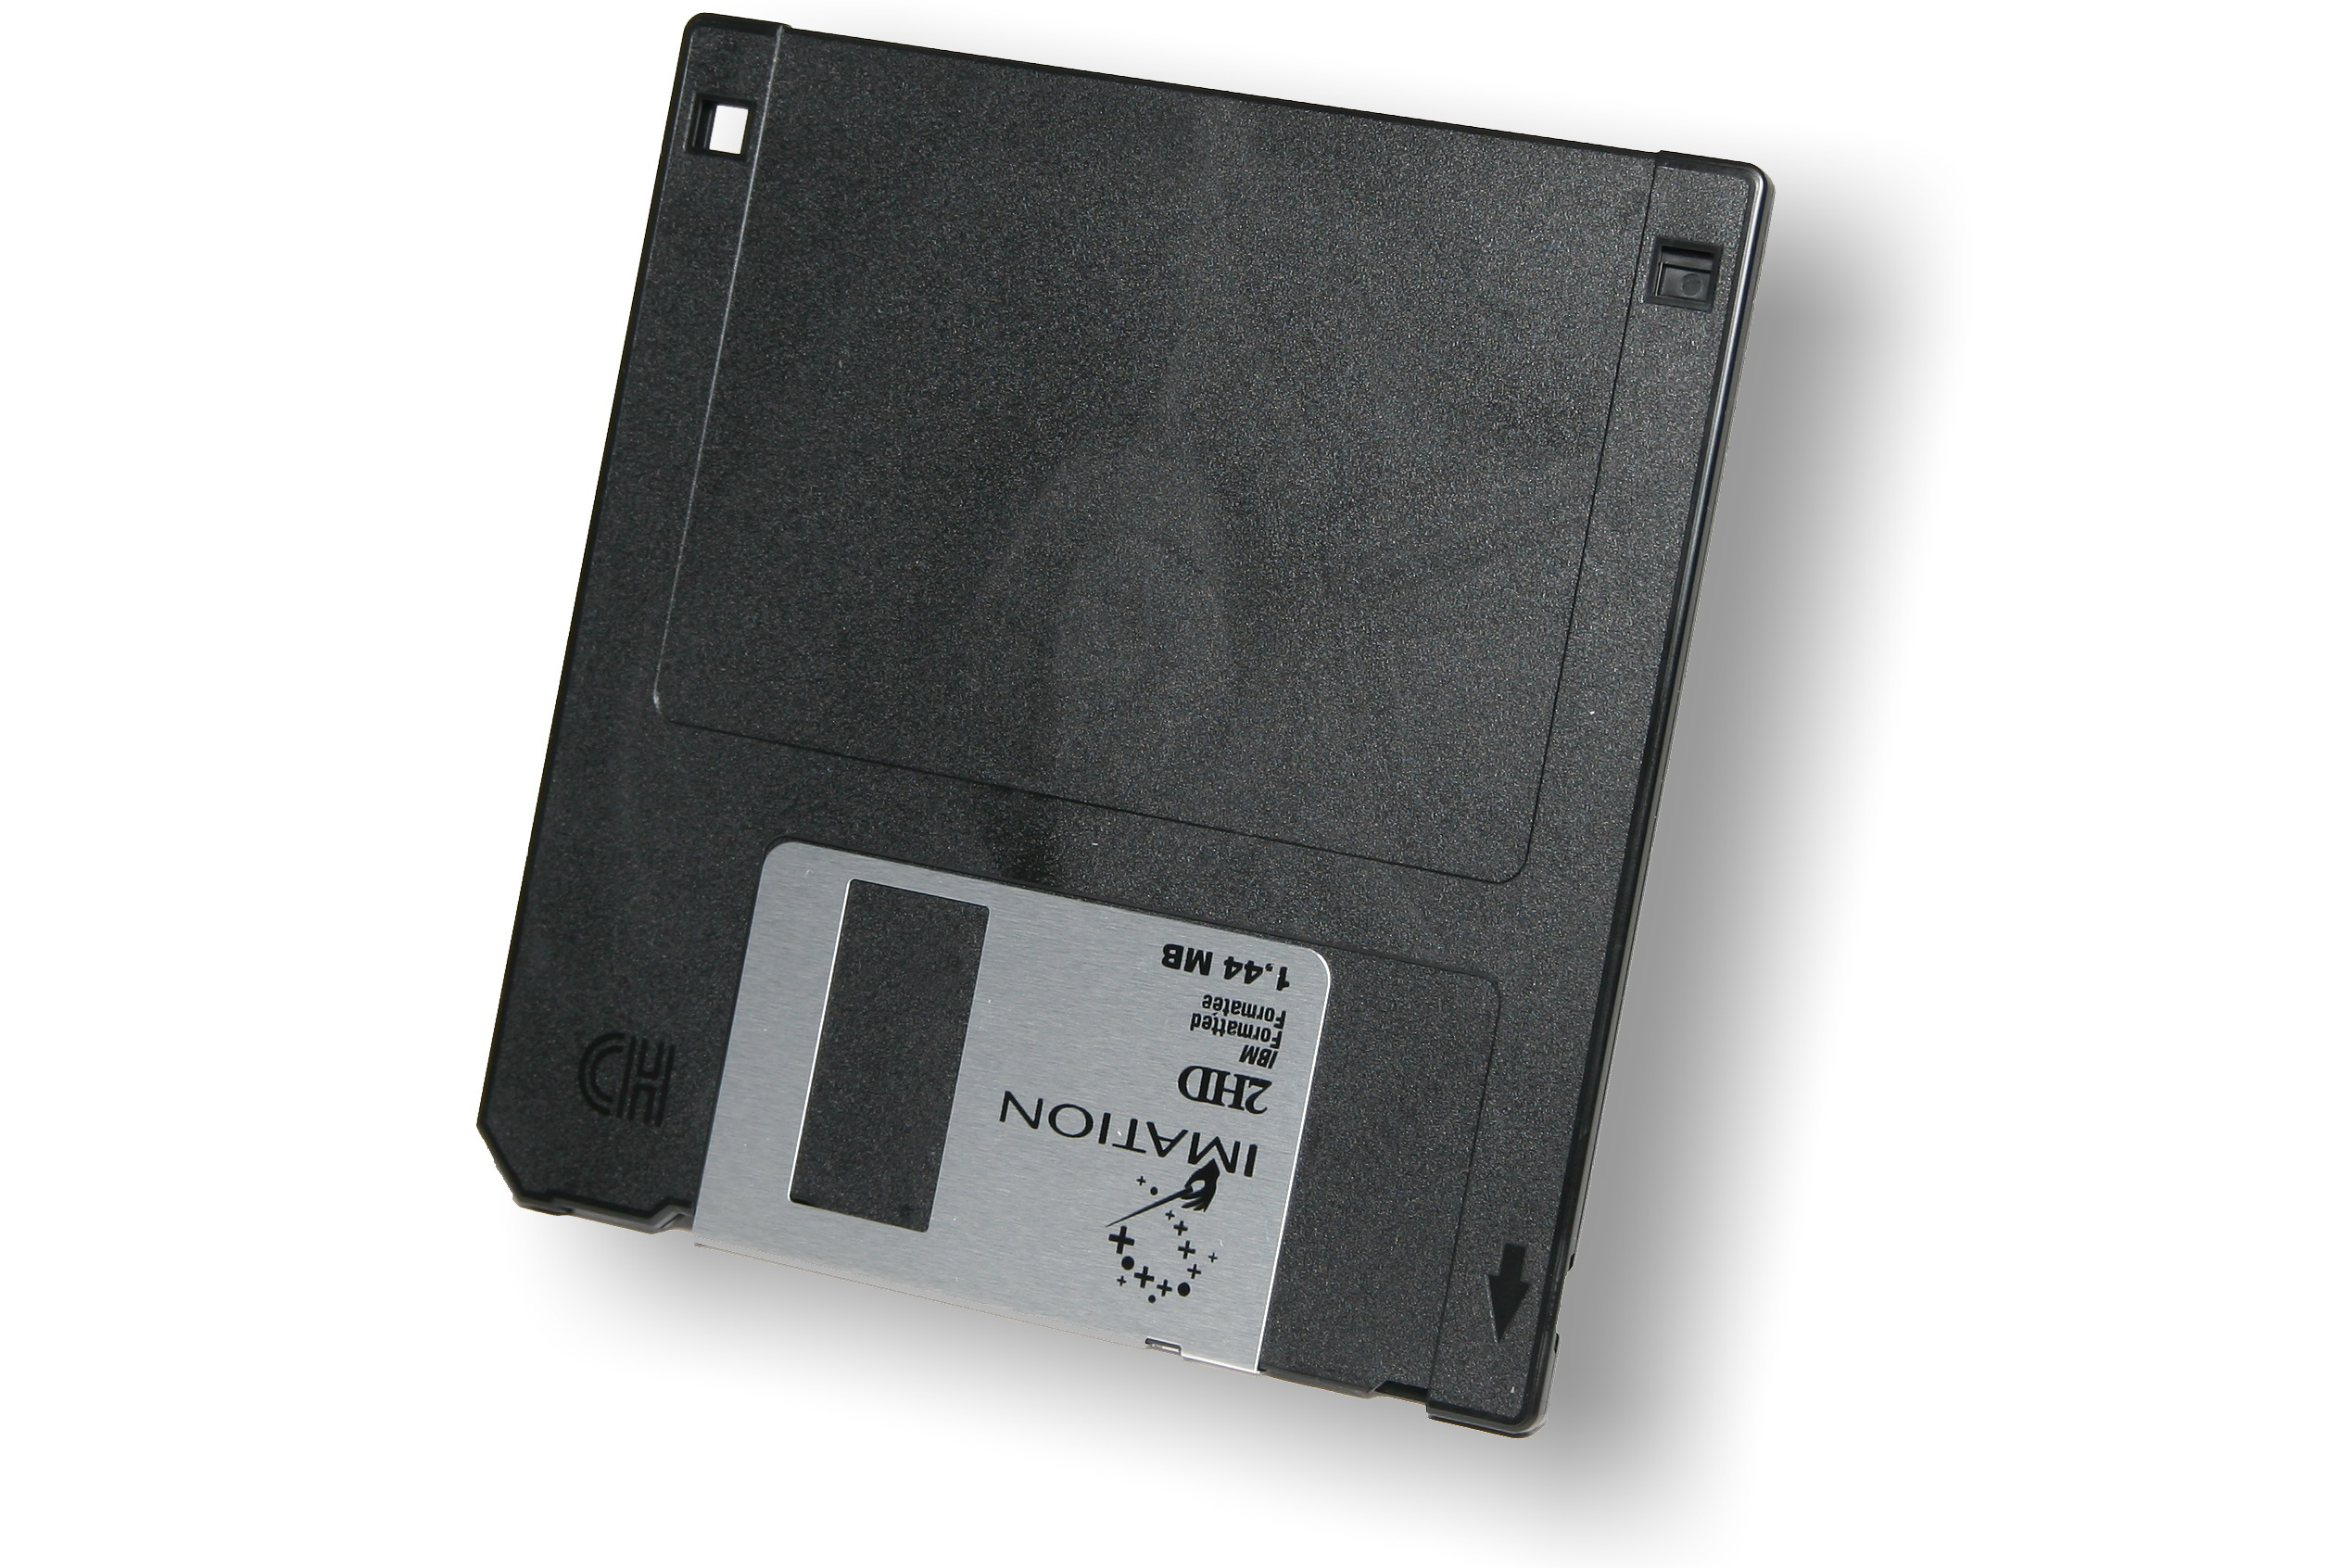 """3,5""-Diskette"" by Afrank99 - Own work. Licensed under Creative Commons Attribution-Share Alike 2.0 via Wikimedia Commons - http://commons.wikimedia.org/wiki/File:3,5%22-Diskette.jpg#mediaviewer/File:3,5%22-Diskette.jpg"